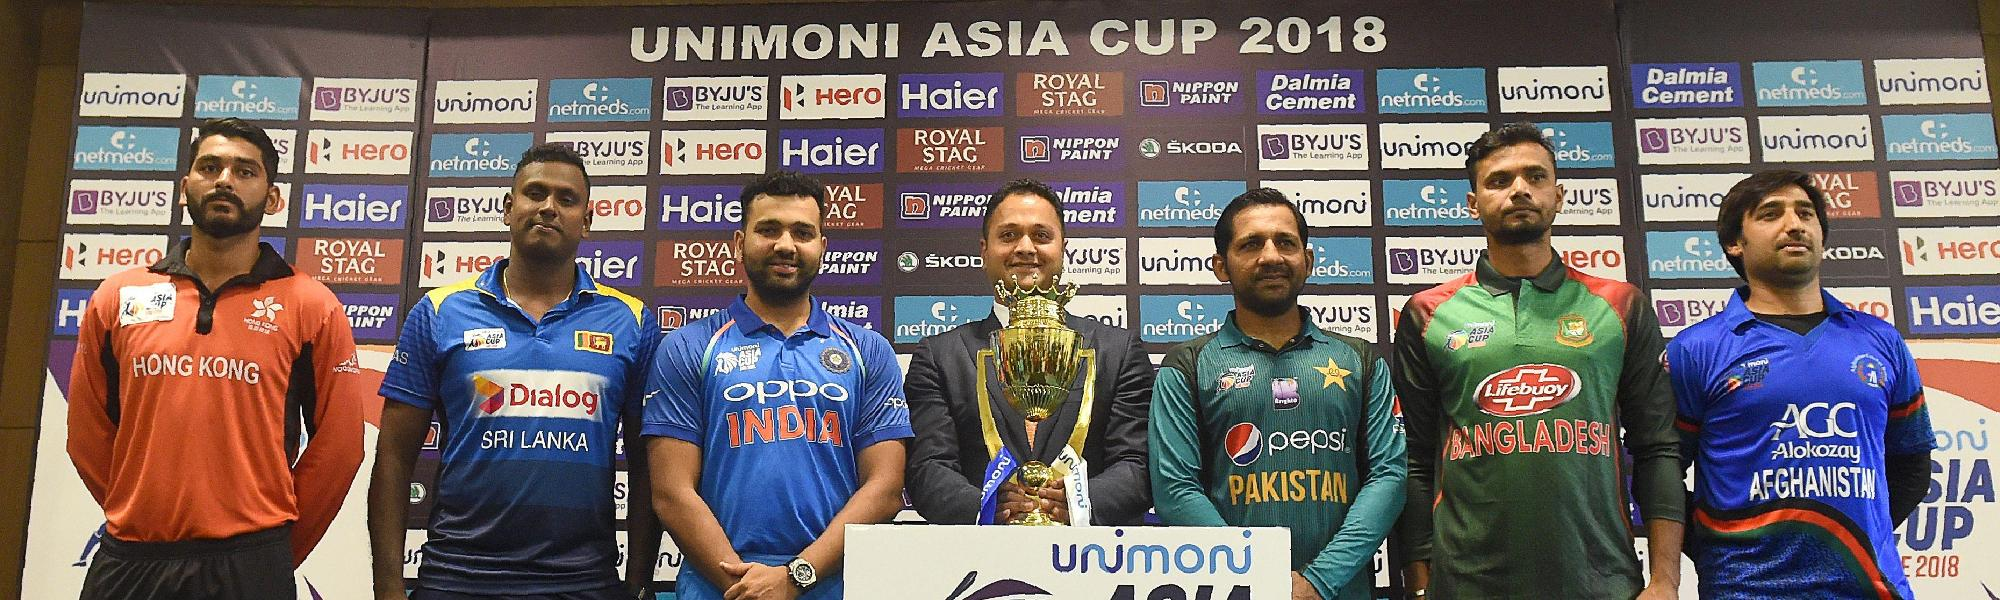 Asia Cup 2020 Cricket.Pcb Granted Rights For 2020 Asia Cup